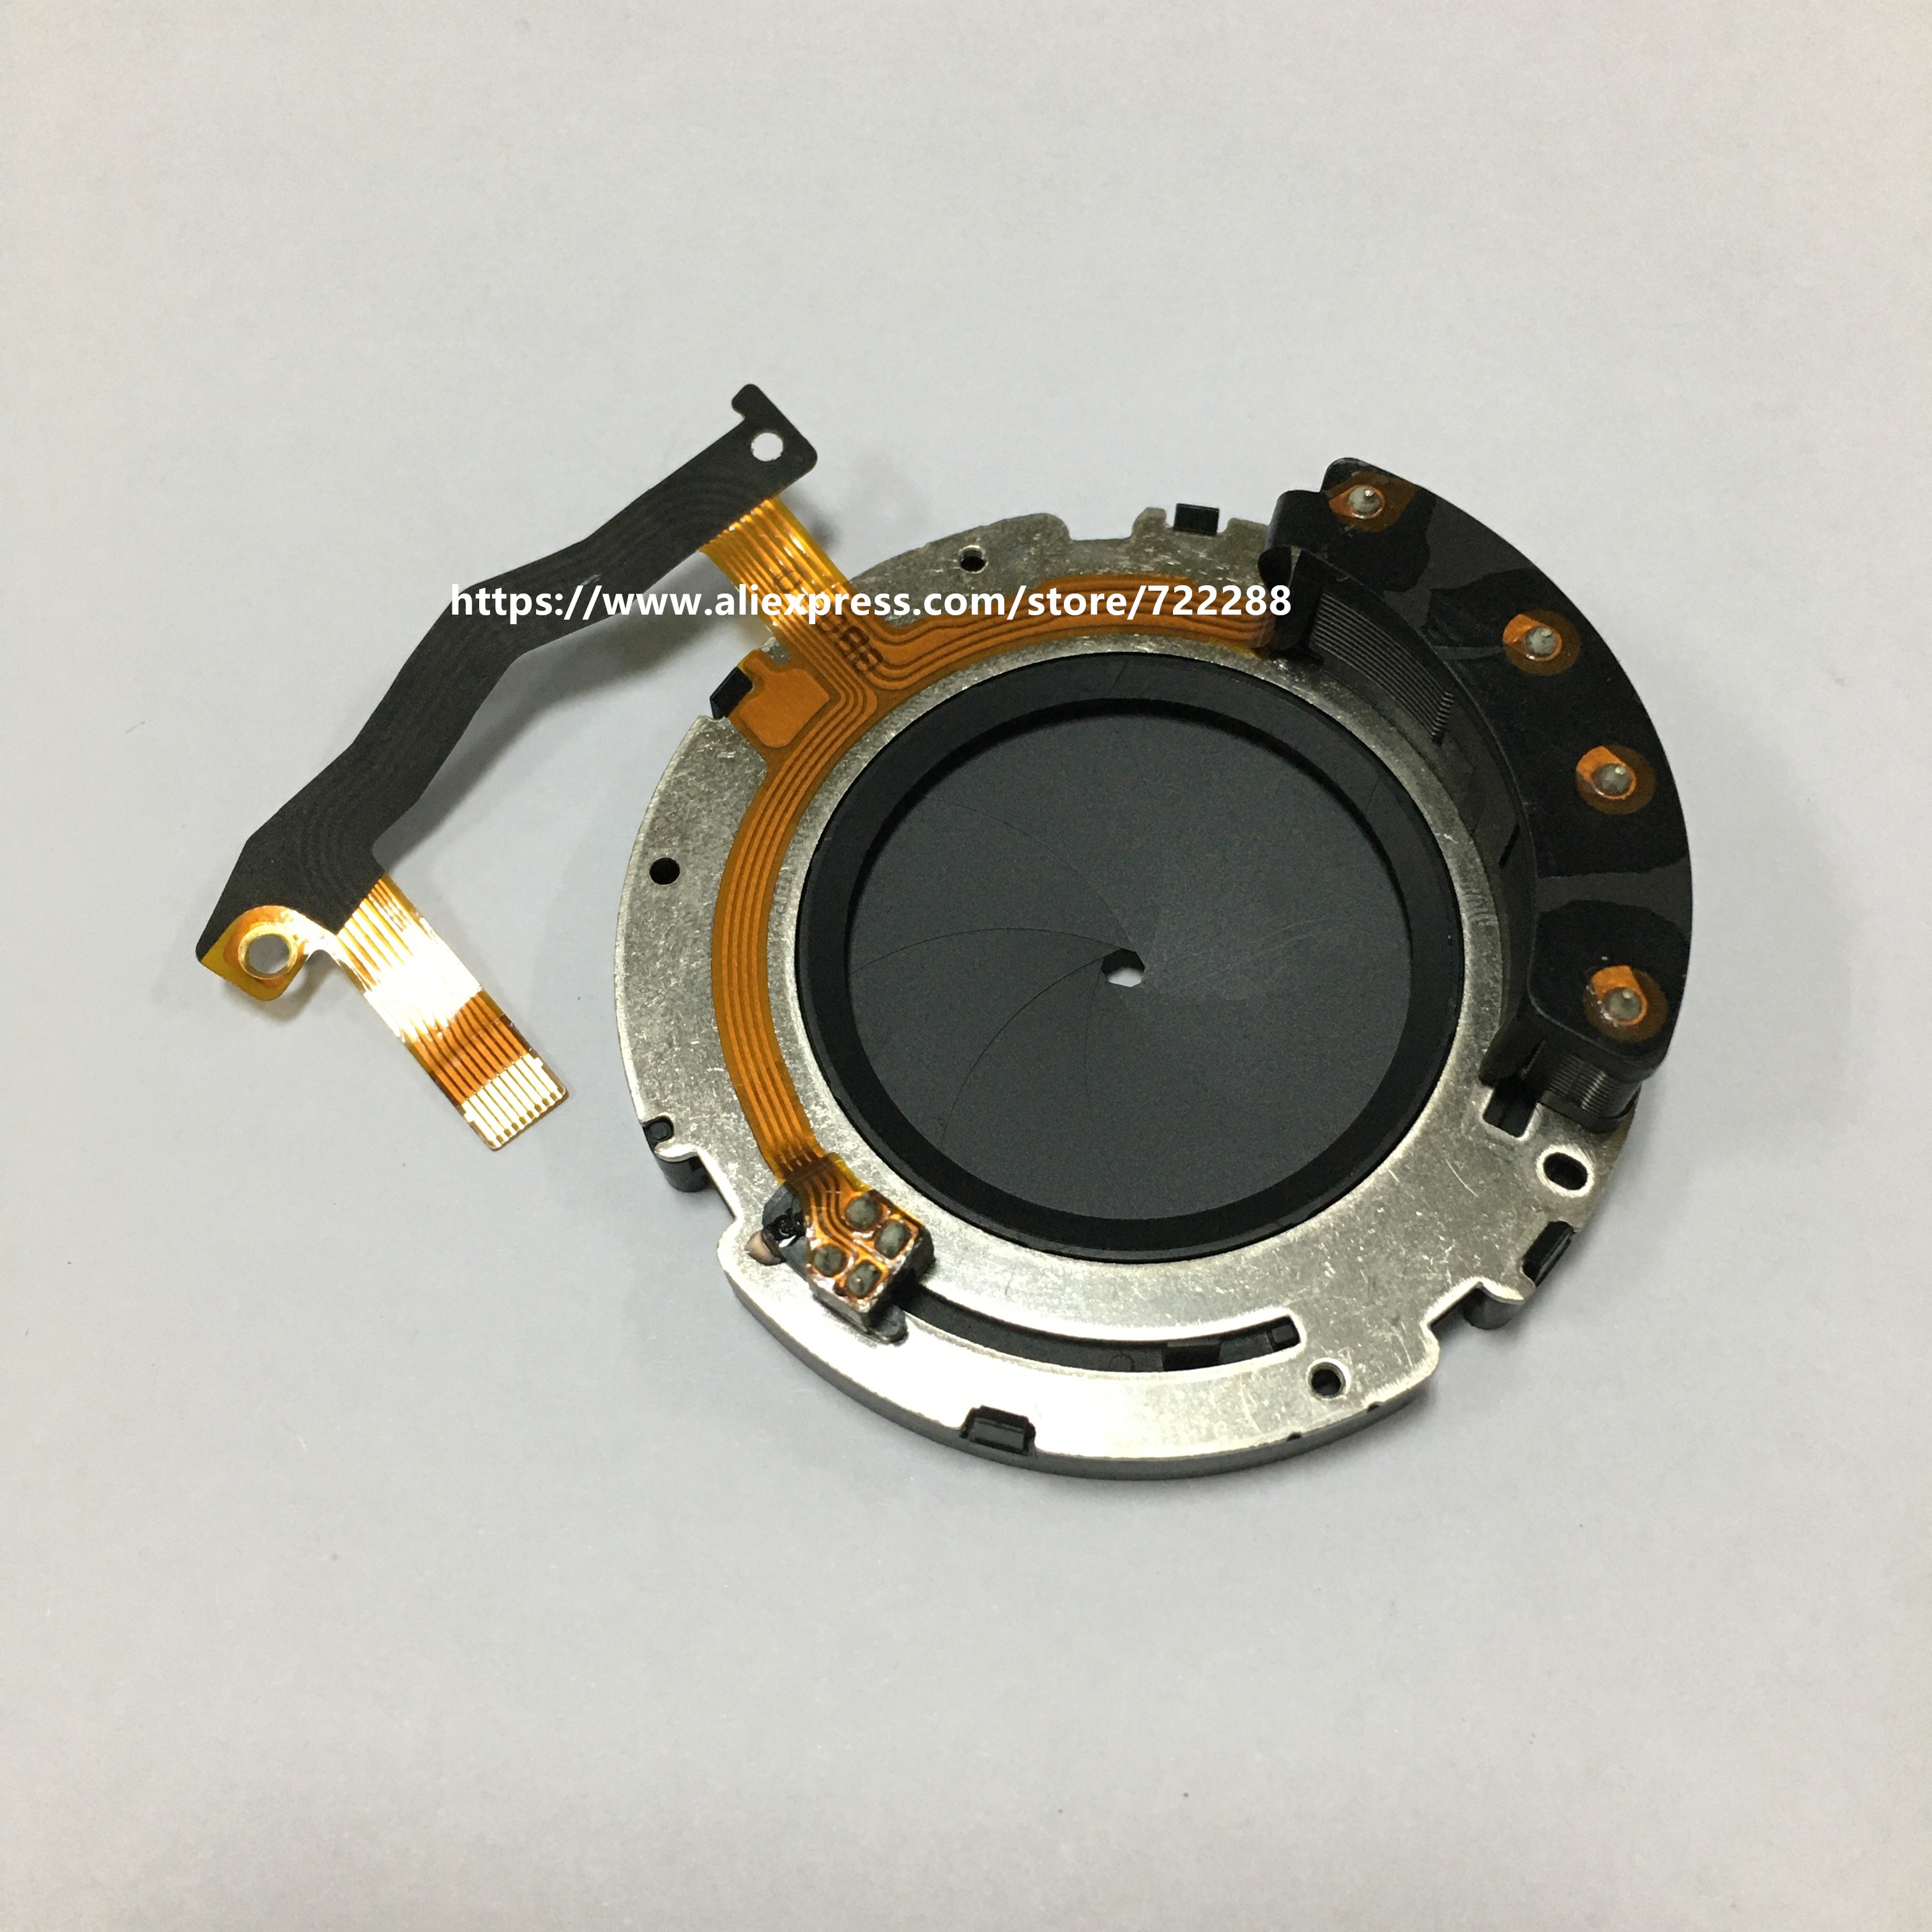 Canon EF 24-70mm F//2.8 L USM Lens Replacement Collar Part OEM New YF2-2010-000